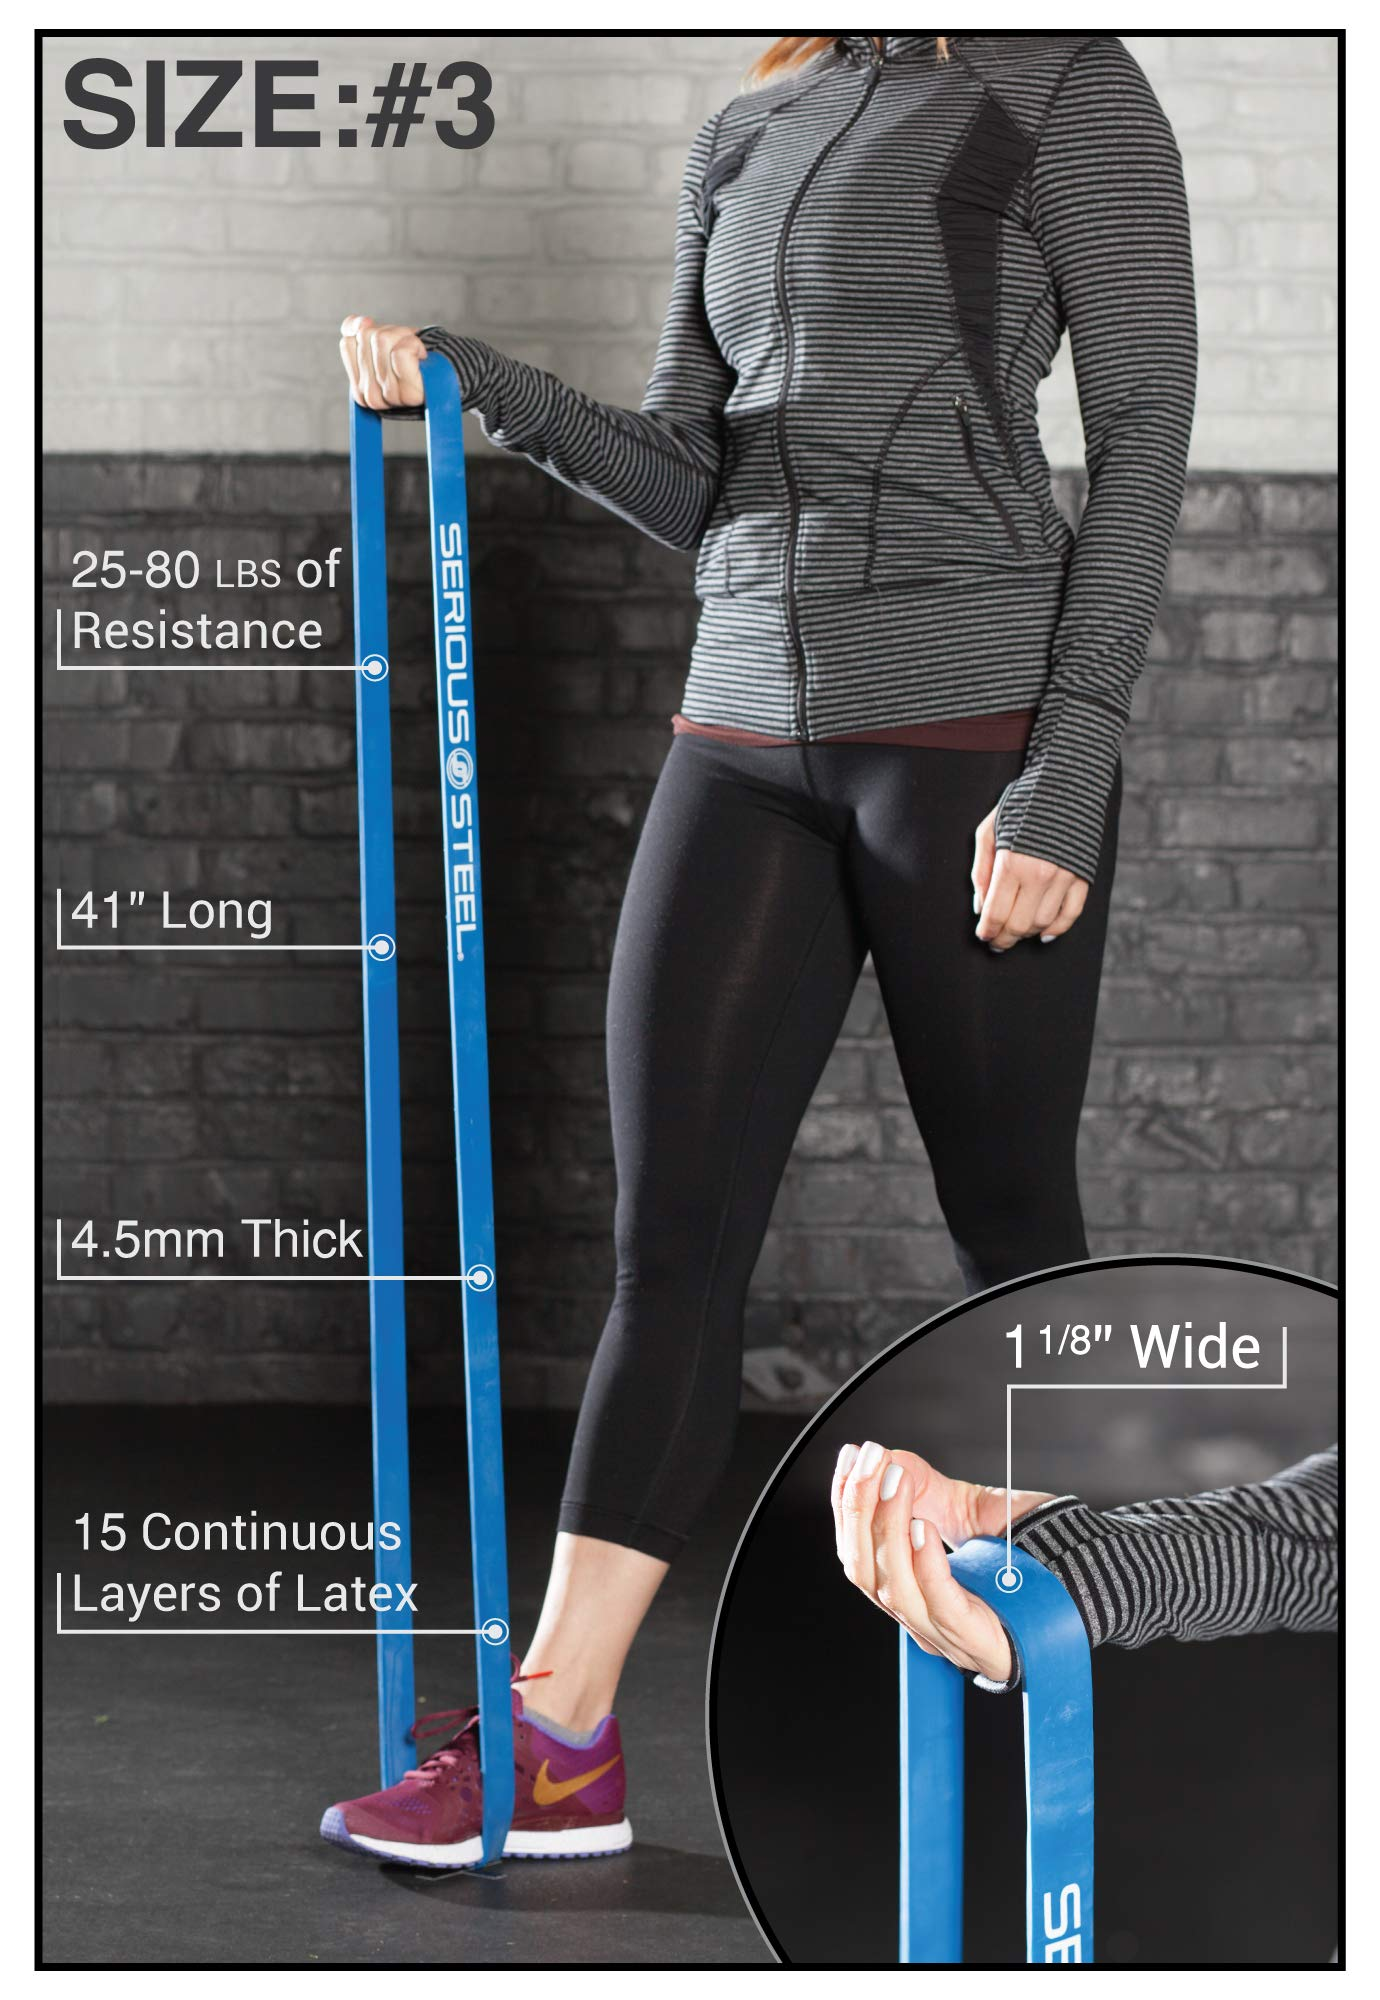 """Serious Steel Fitness Blue - #3 Light Pull-Up Assist & Stretching Resistance Band (Size: 1.125""""W, Resistance: 20-80lbs) Pull-Up and Starter Band e-Guide INCLUDED by Serious Steel Fitness (Image #3)"""